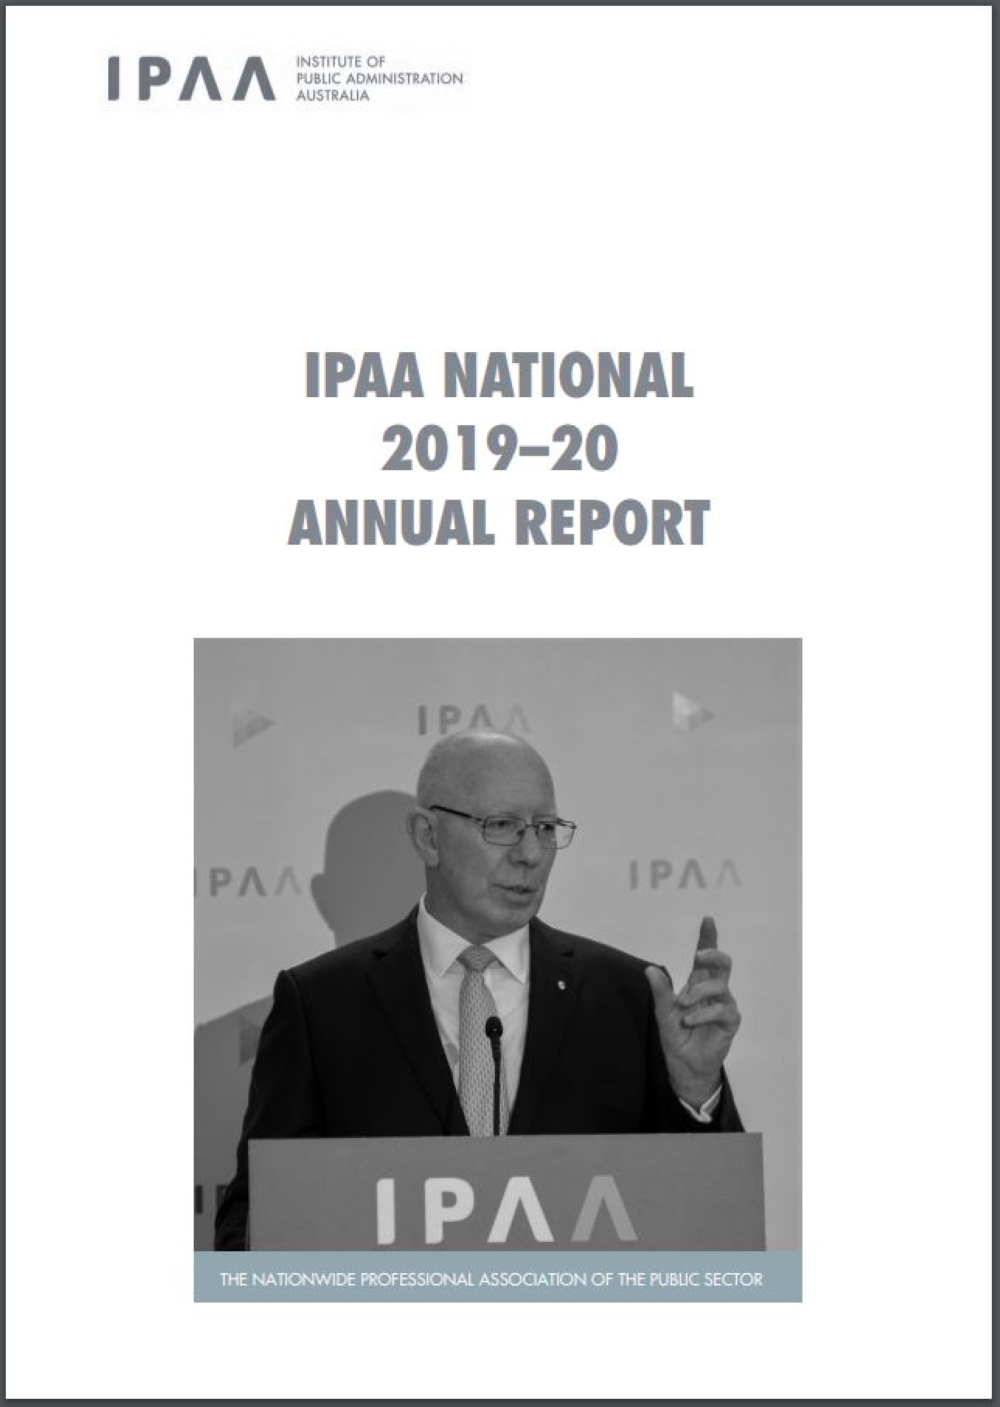 IPAA National Annual Report 2019-2020 cover